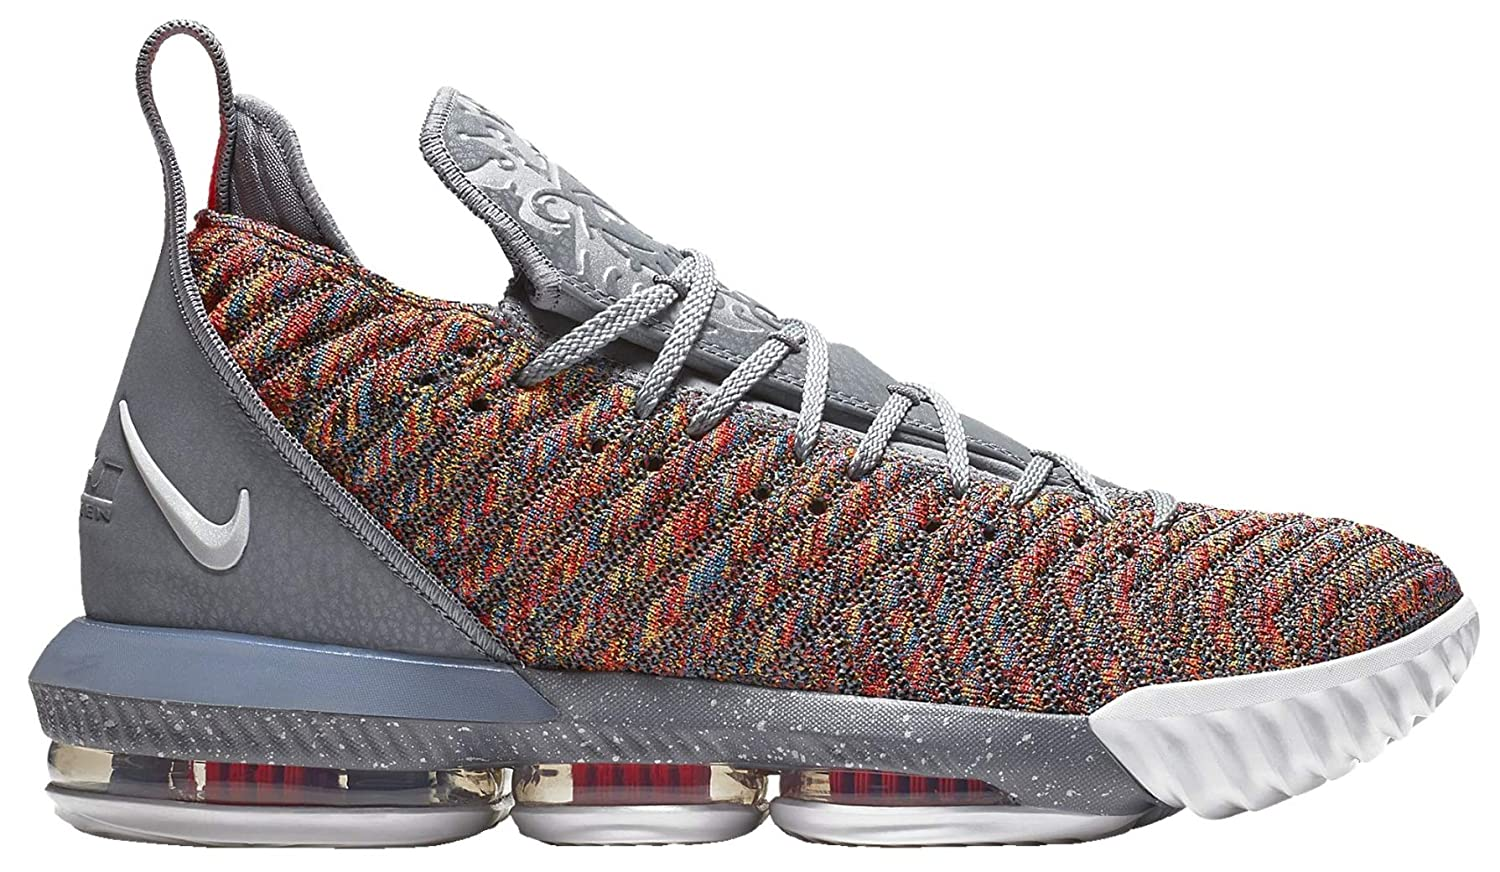 new arrival c0aef 903b7 Amazon.com | Nike Lebron 16 Basketball Shoes (Silver, 11.5 ...